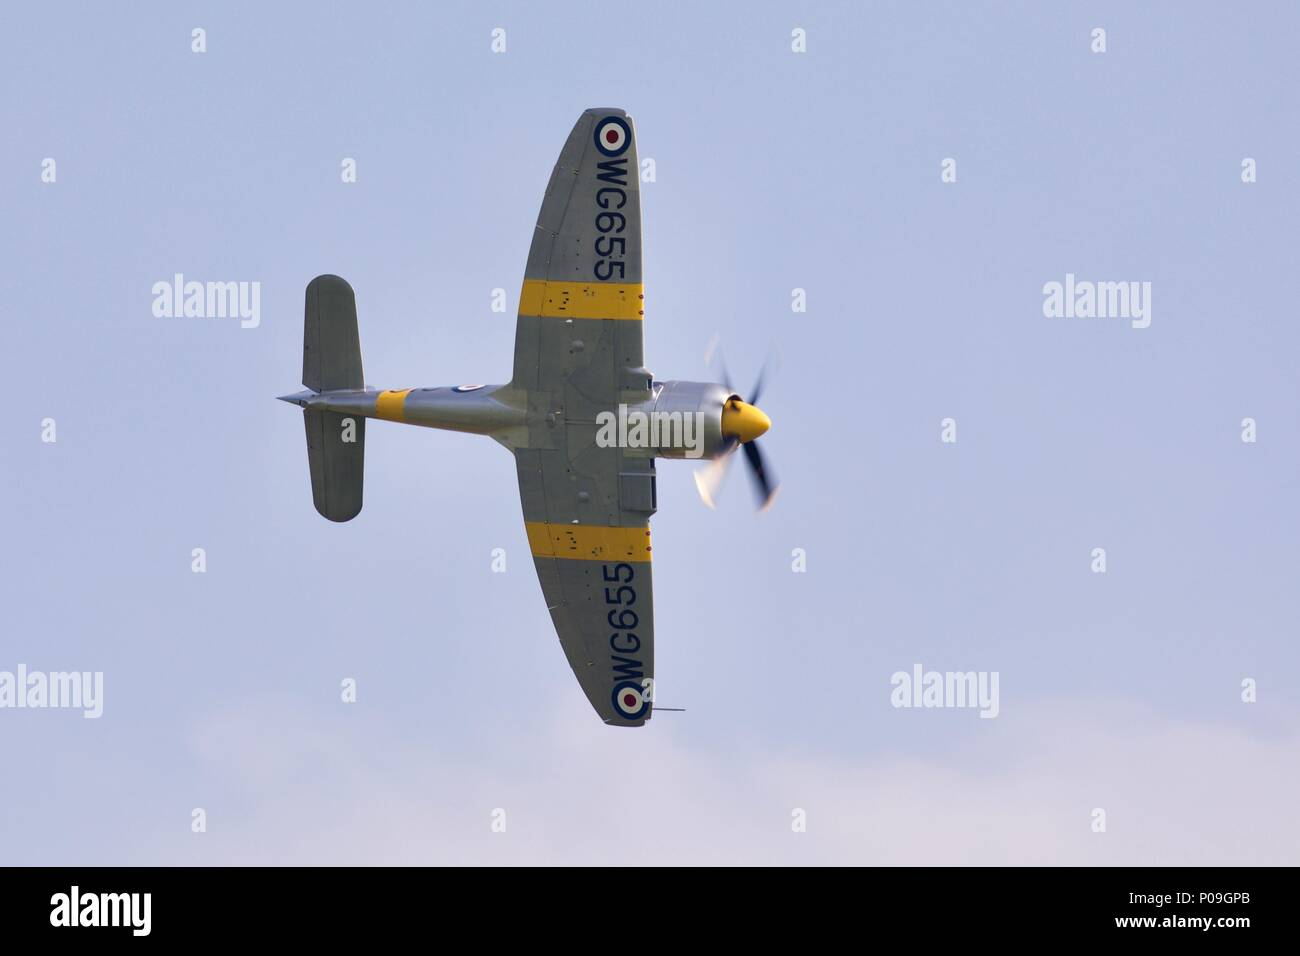 1951 Hawker Sea Fury from The Fighter Collection taking to the sky at the Imperial War Museum Air Festival on the 27 May 2018 - Stock Image